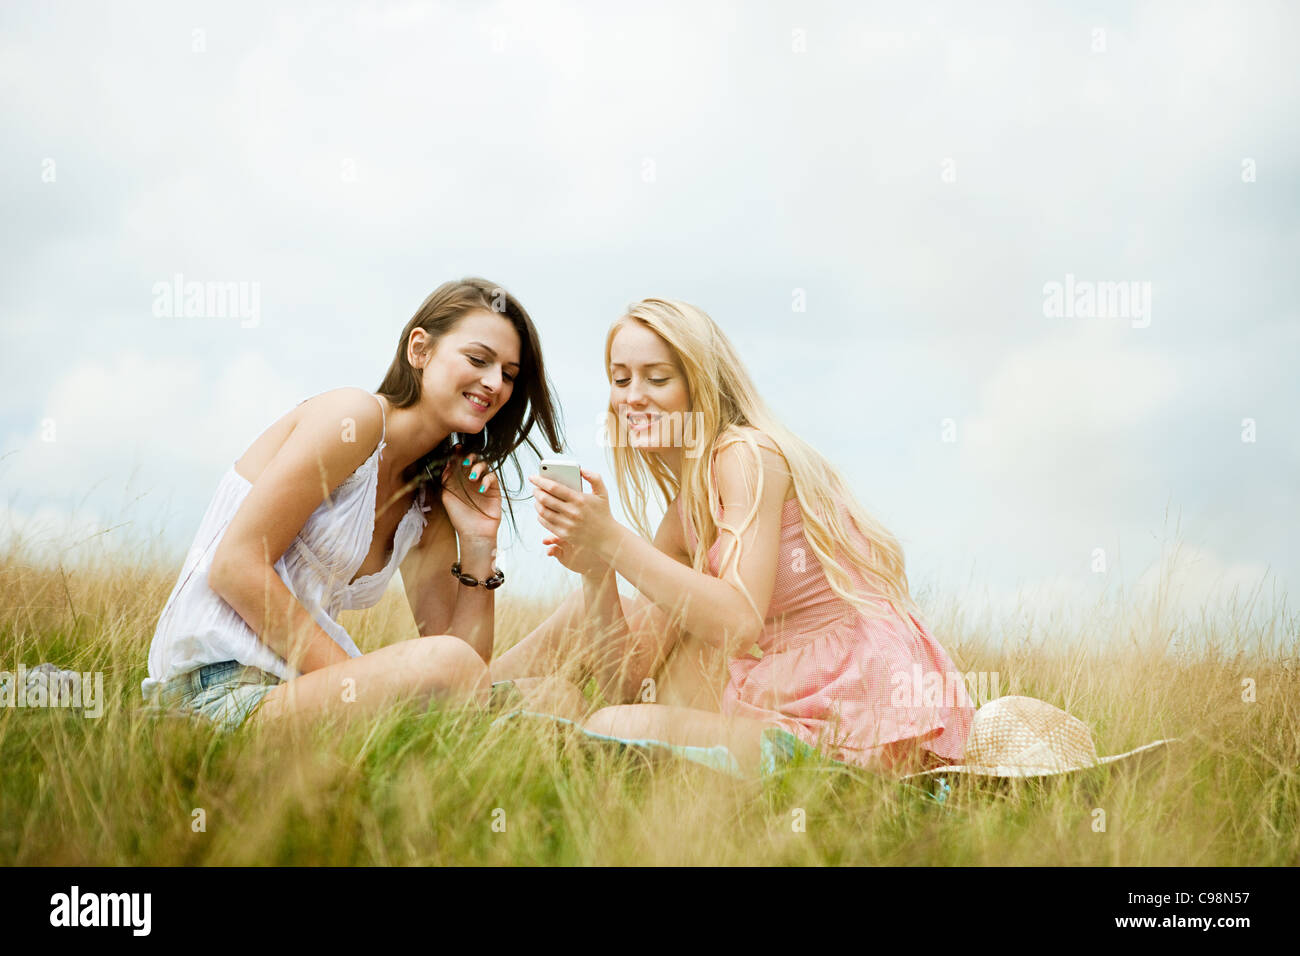 Young women looking hand held device together - Stock Image